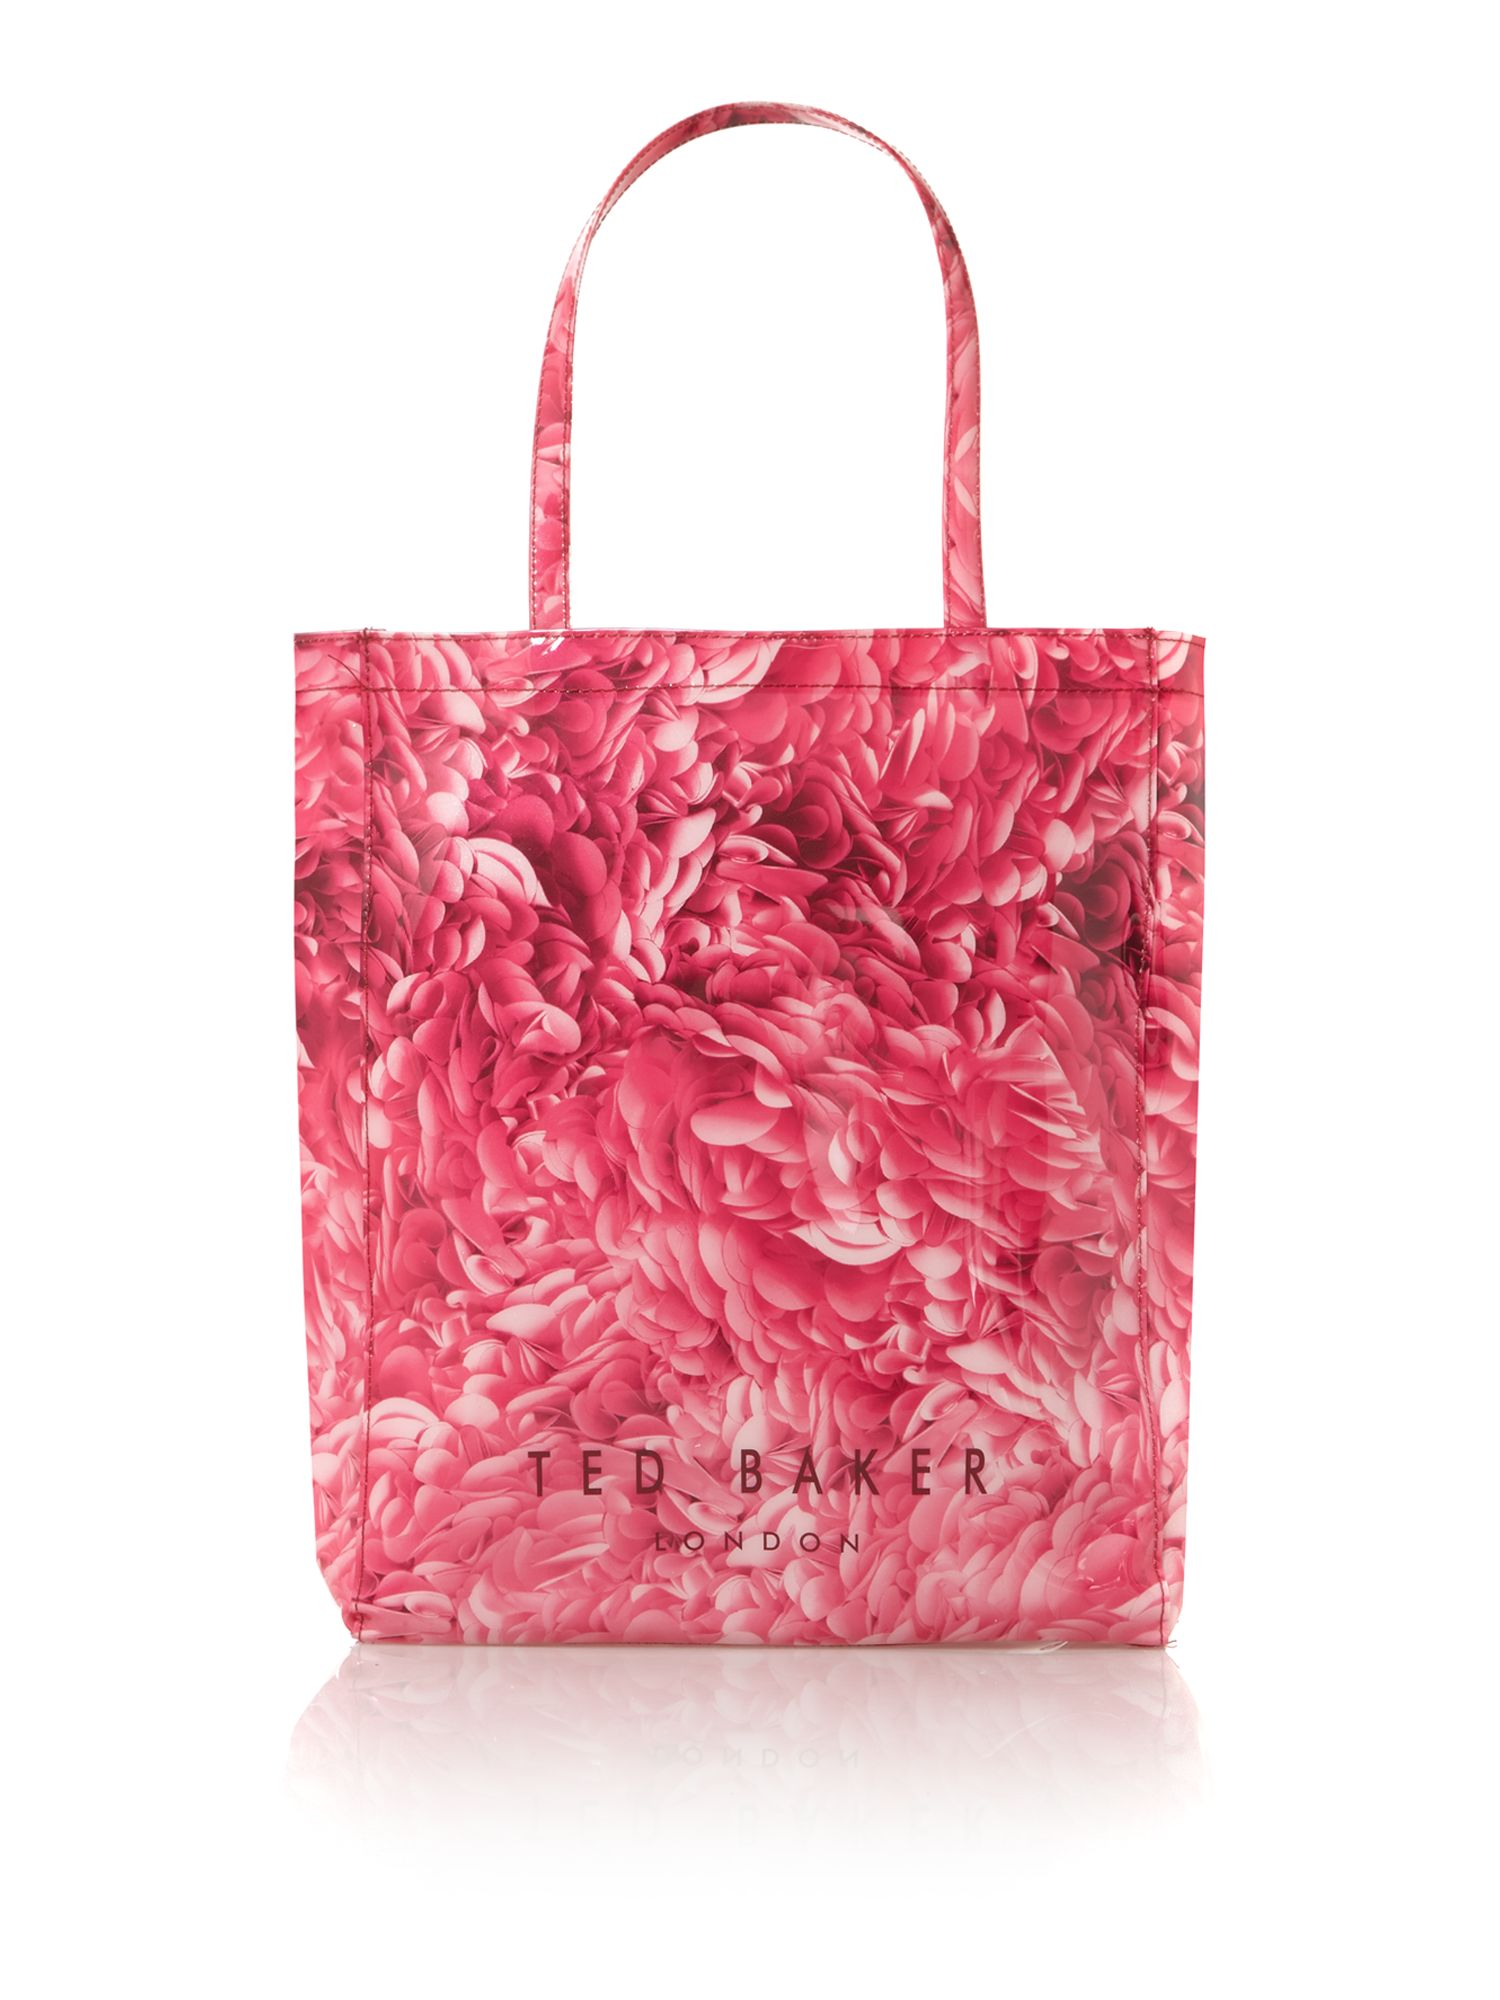 Exclusive rosette printed icon tote bag